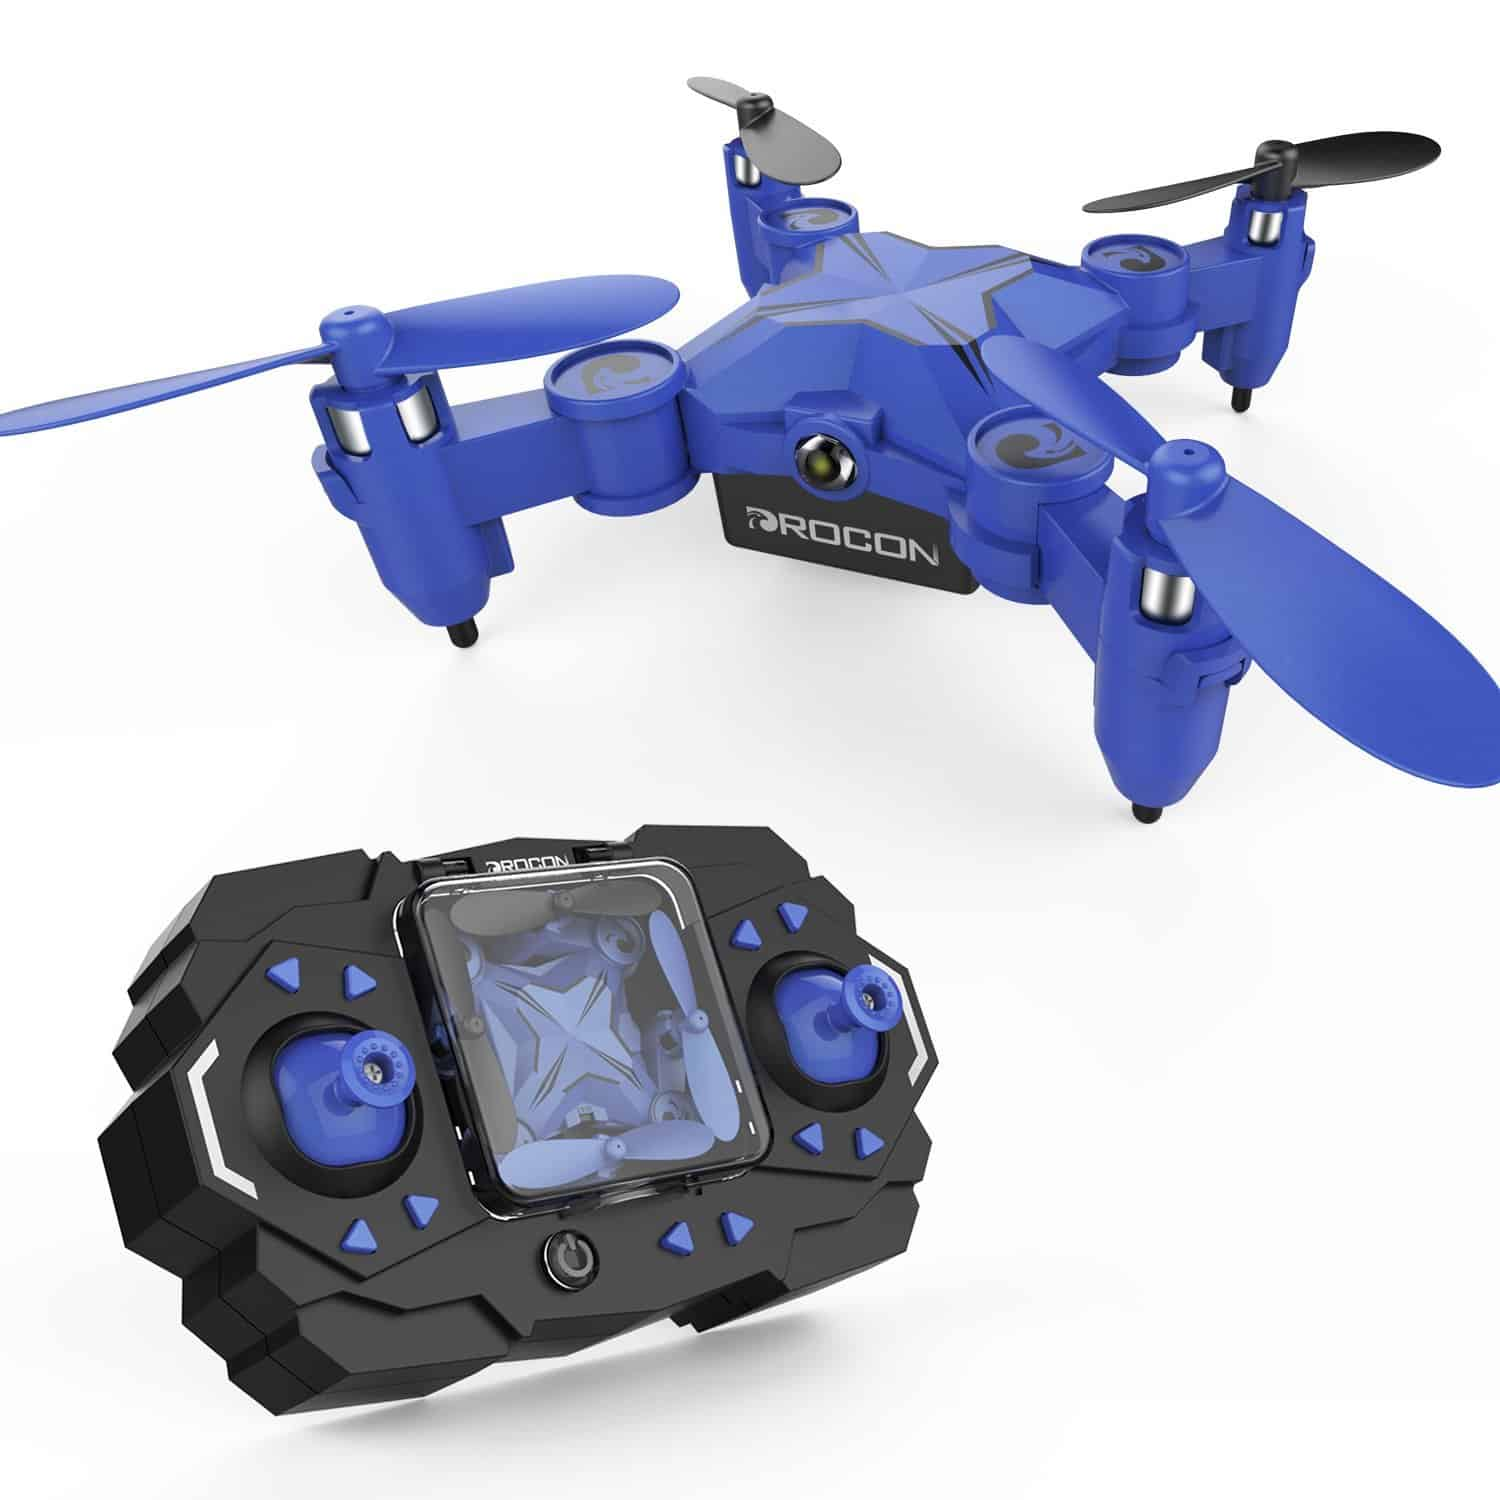 DROCON Scouter Foldable Mini RC Drone Review